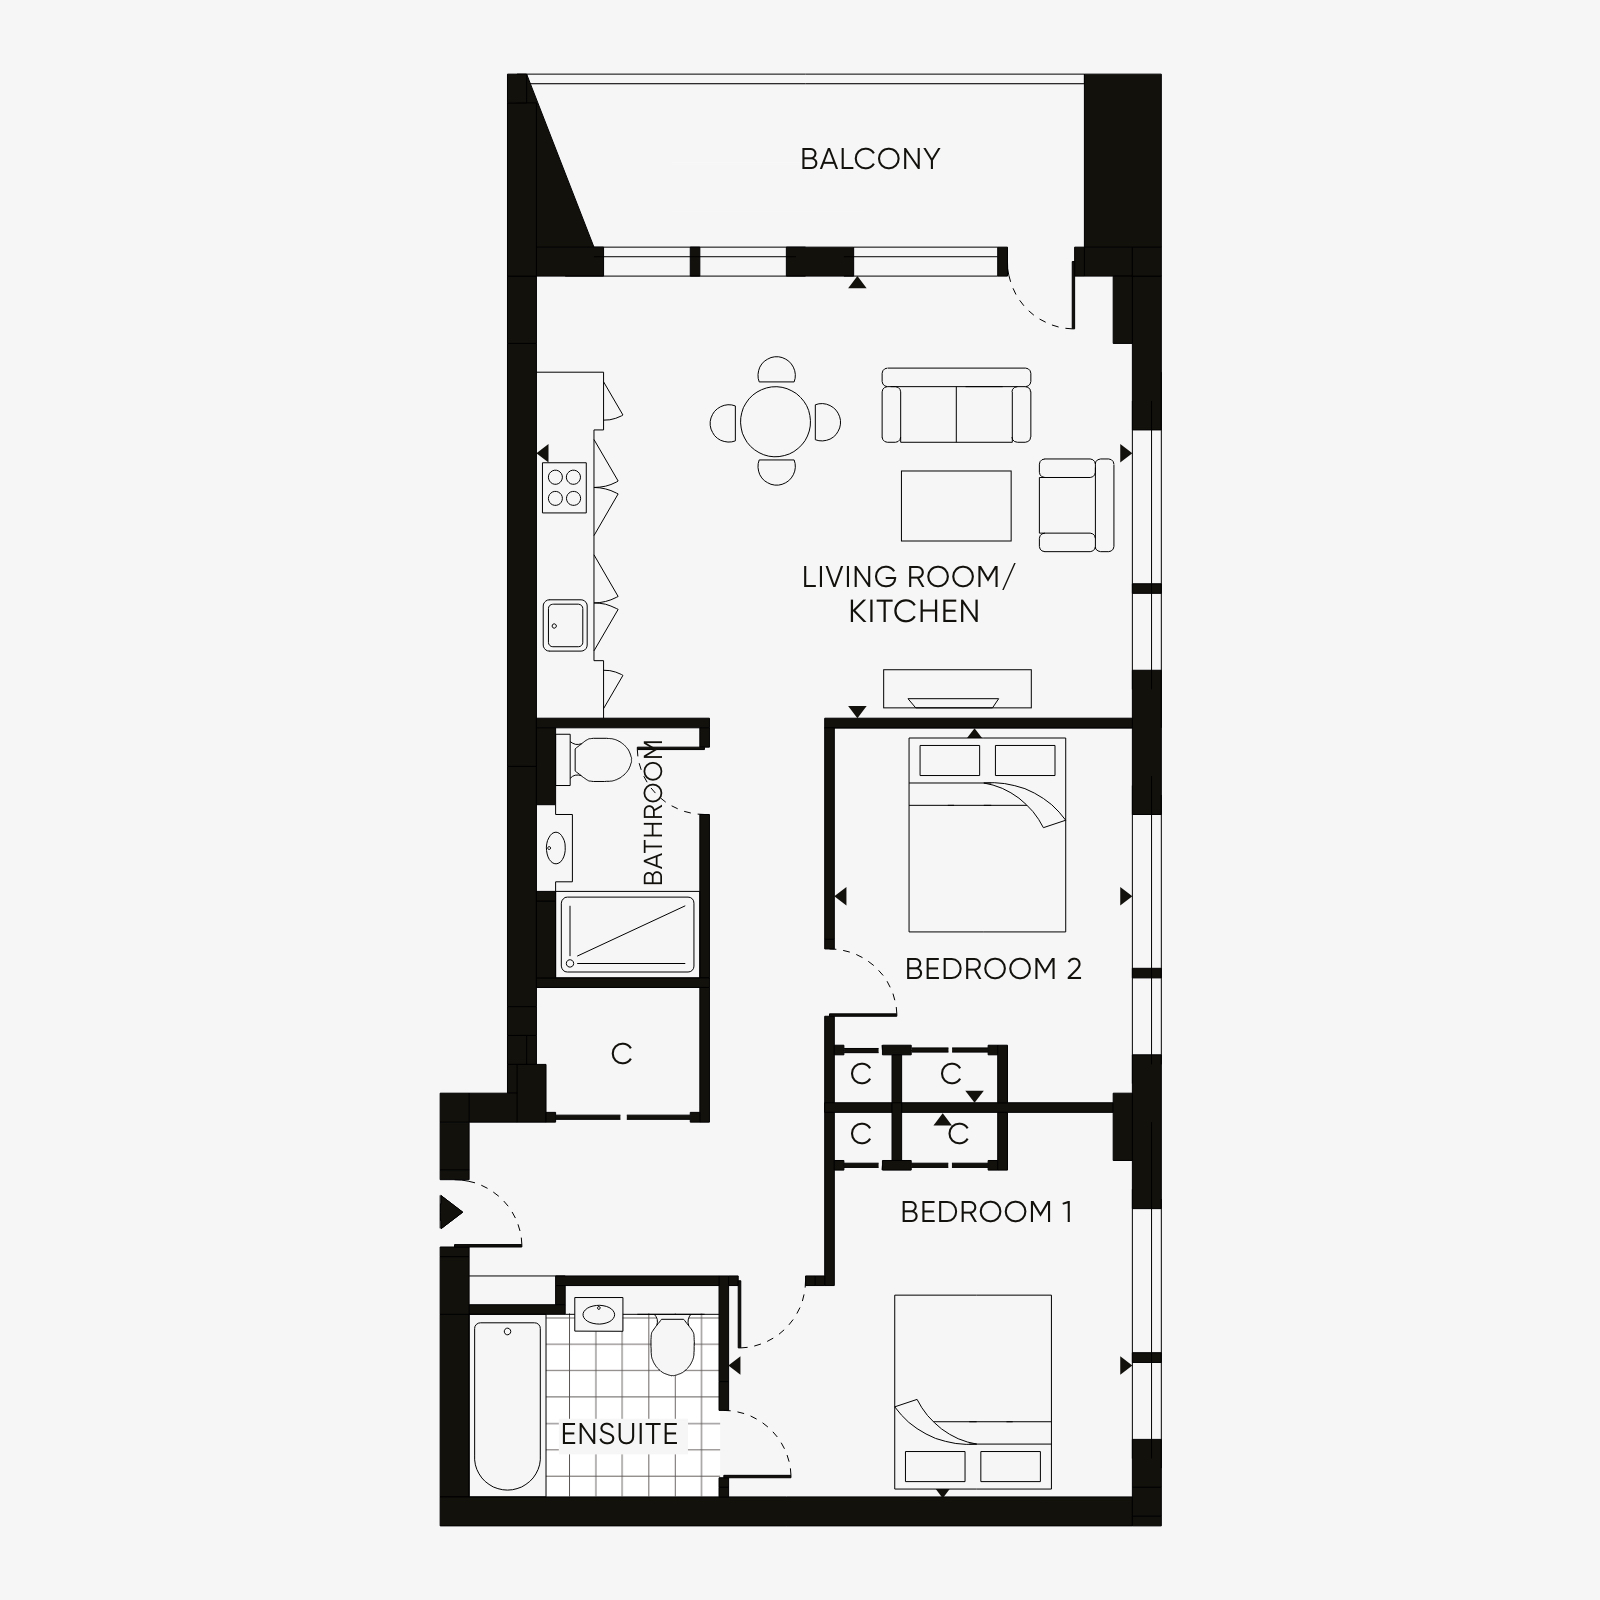 Two bedroom type 3